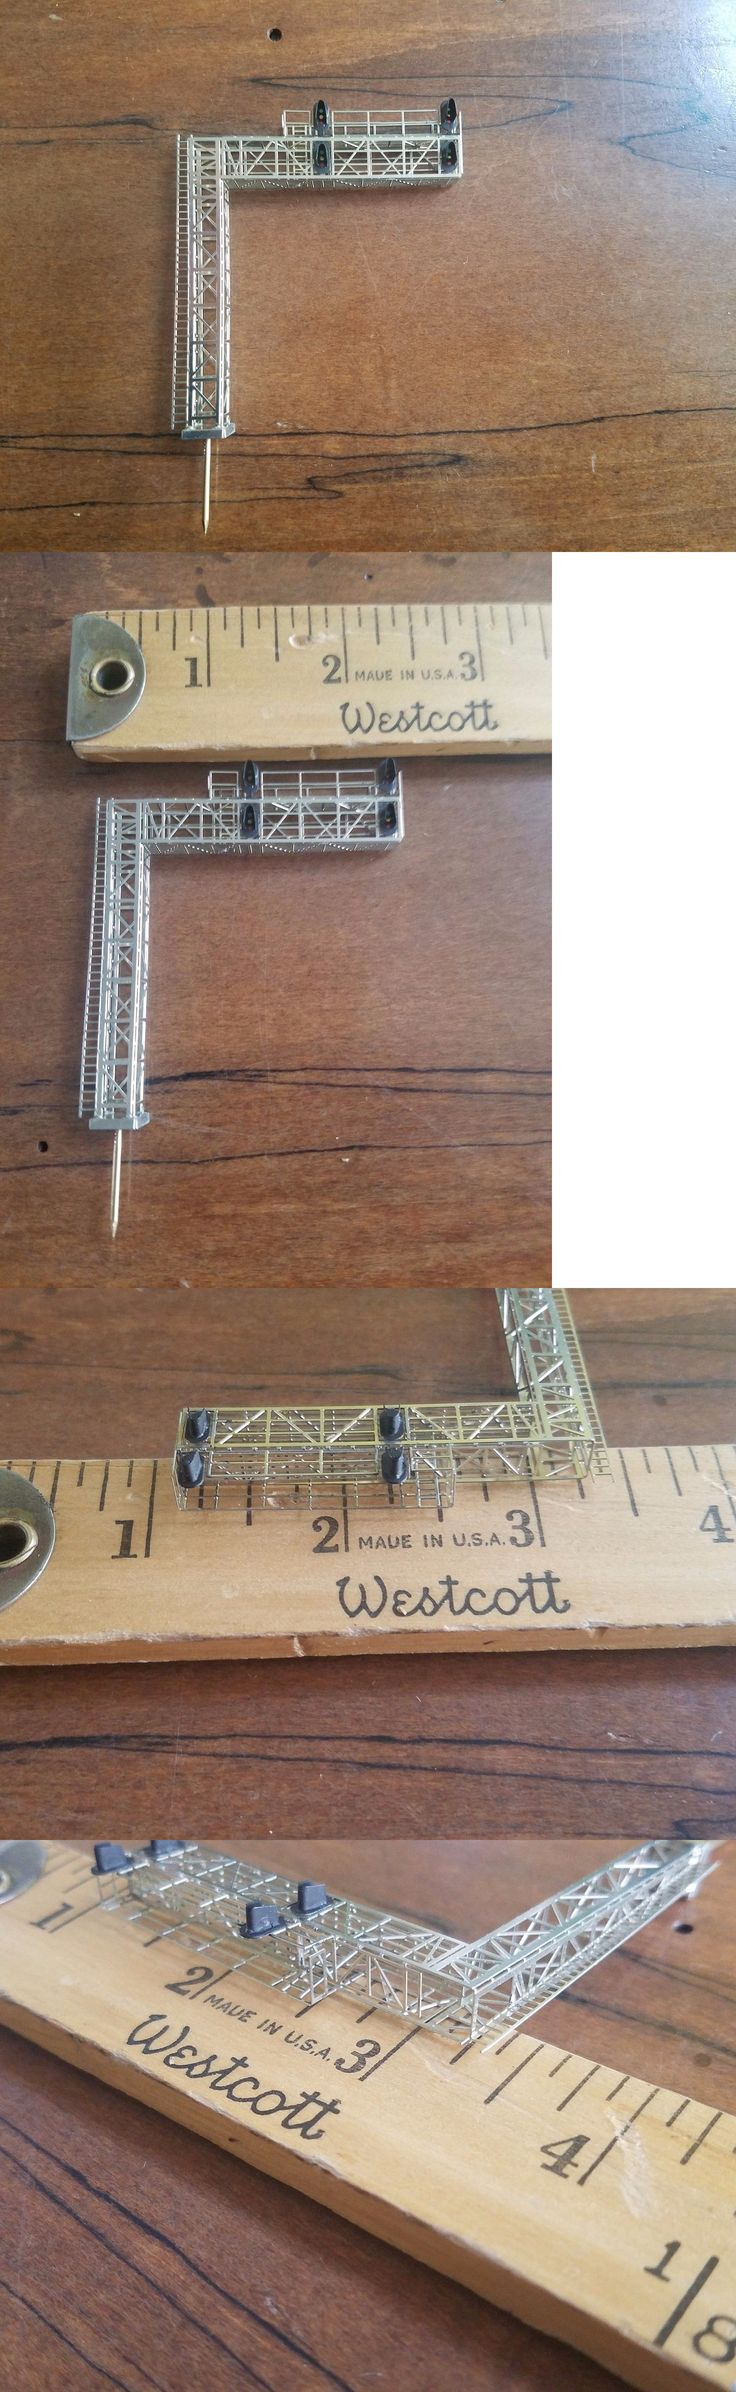 Other HO Scale Parts and Accs 11644: Z Scale Stonebridge Models Modern Cantilever Signal Bridge (Left Hand)- Special! -> BUY IT NOW ONLY: $40 on eBay!